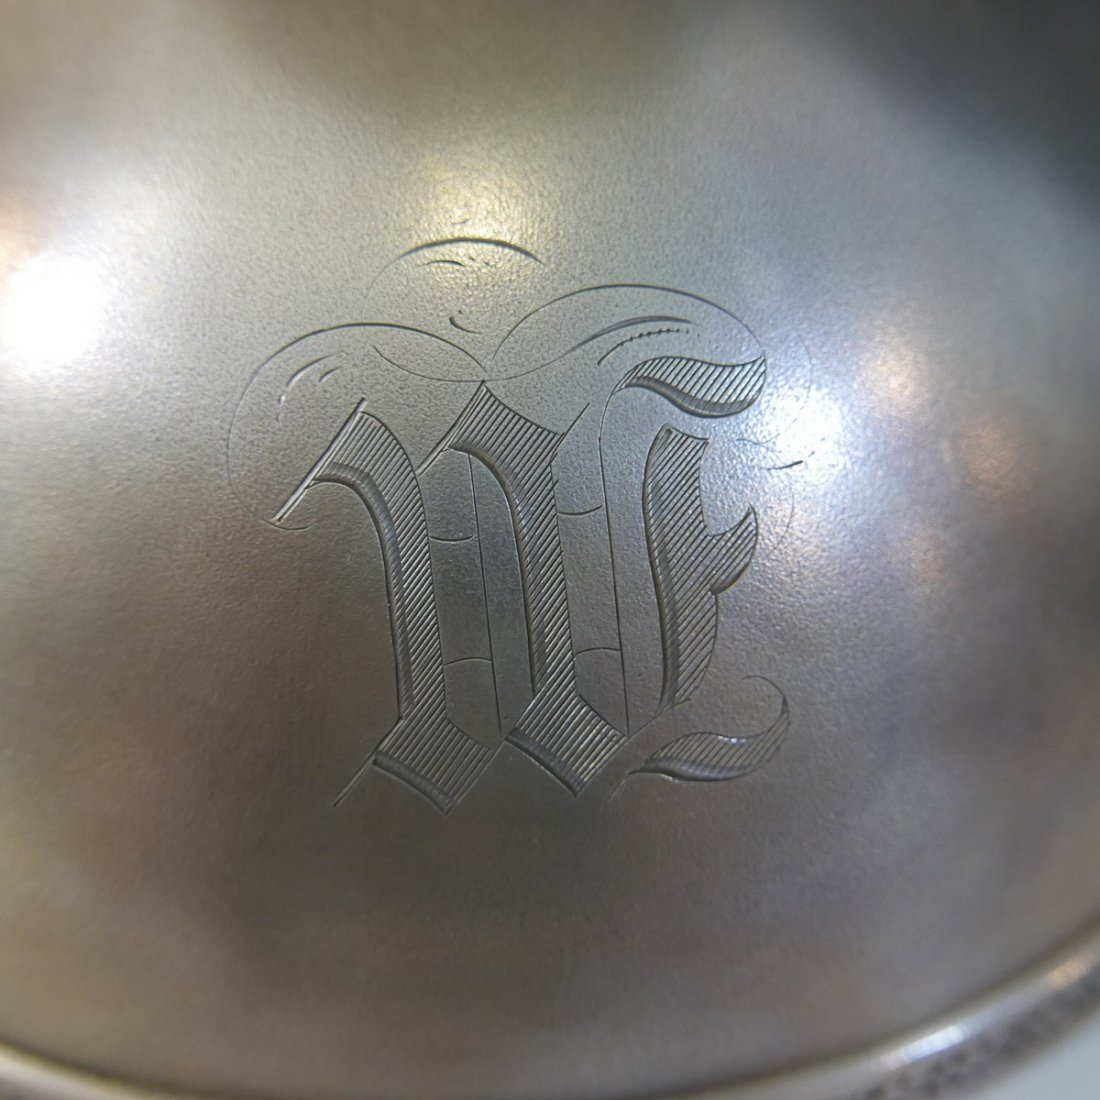 J.E. CALDWELL & CO STERLING SILVER FOOTED BOWL - 530 - 3